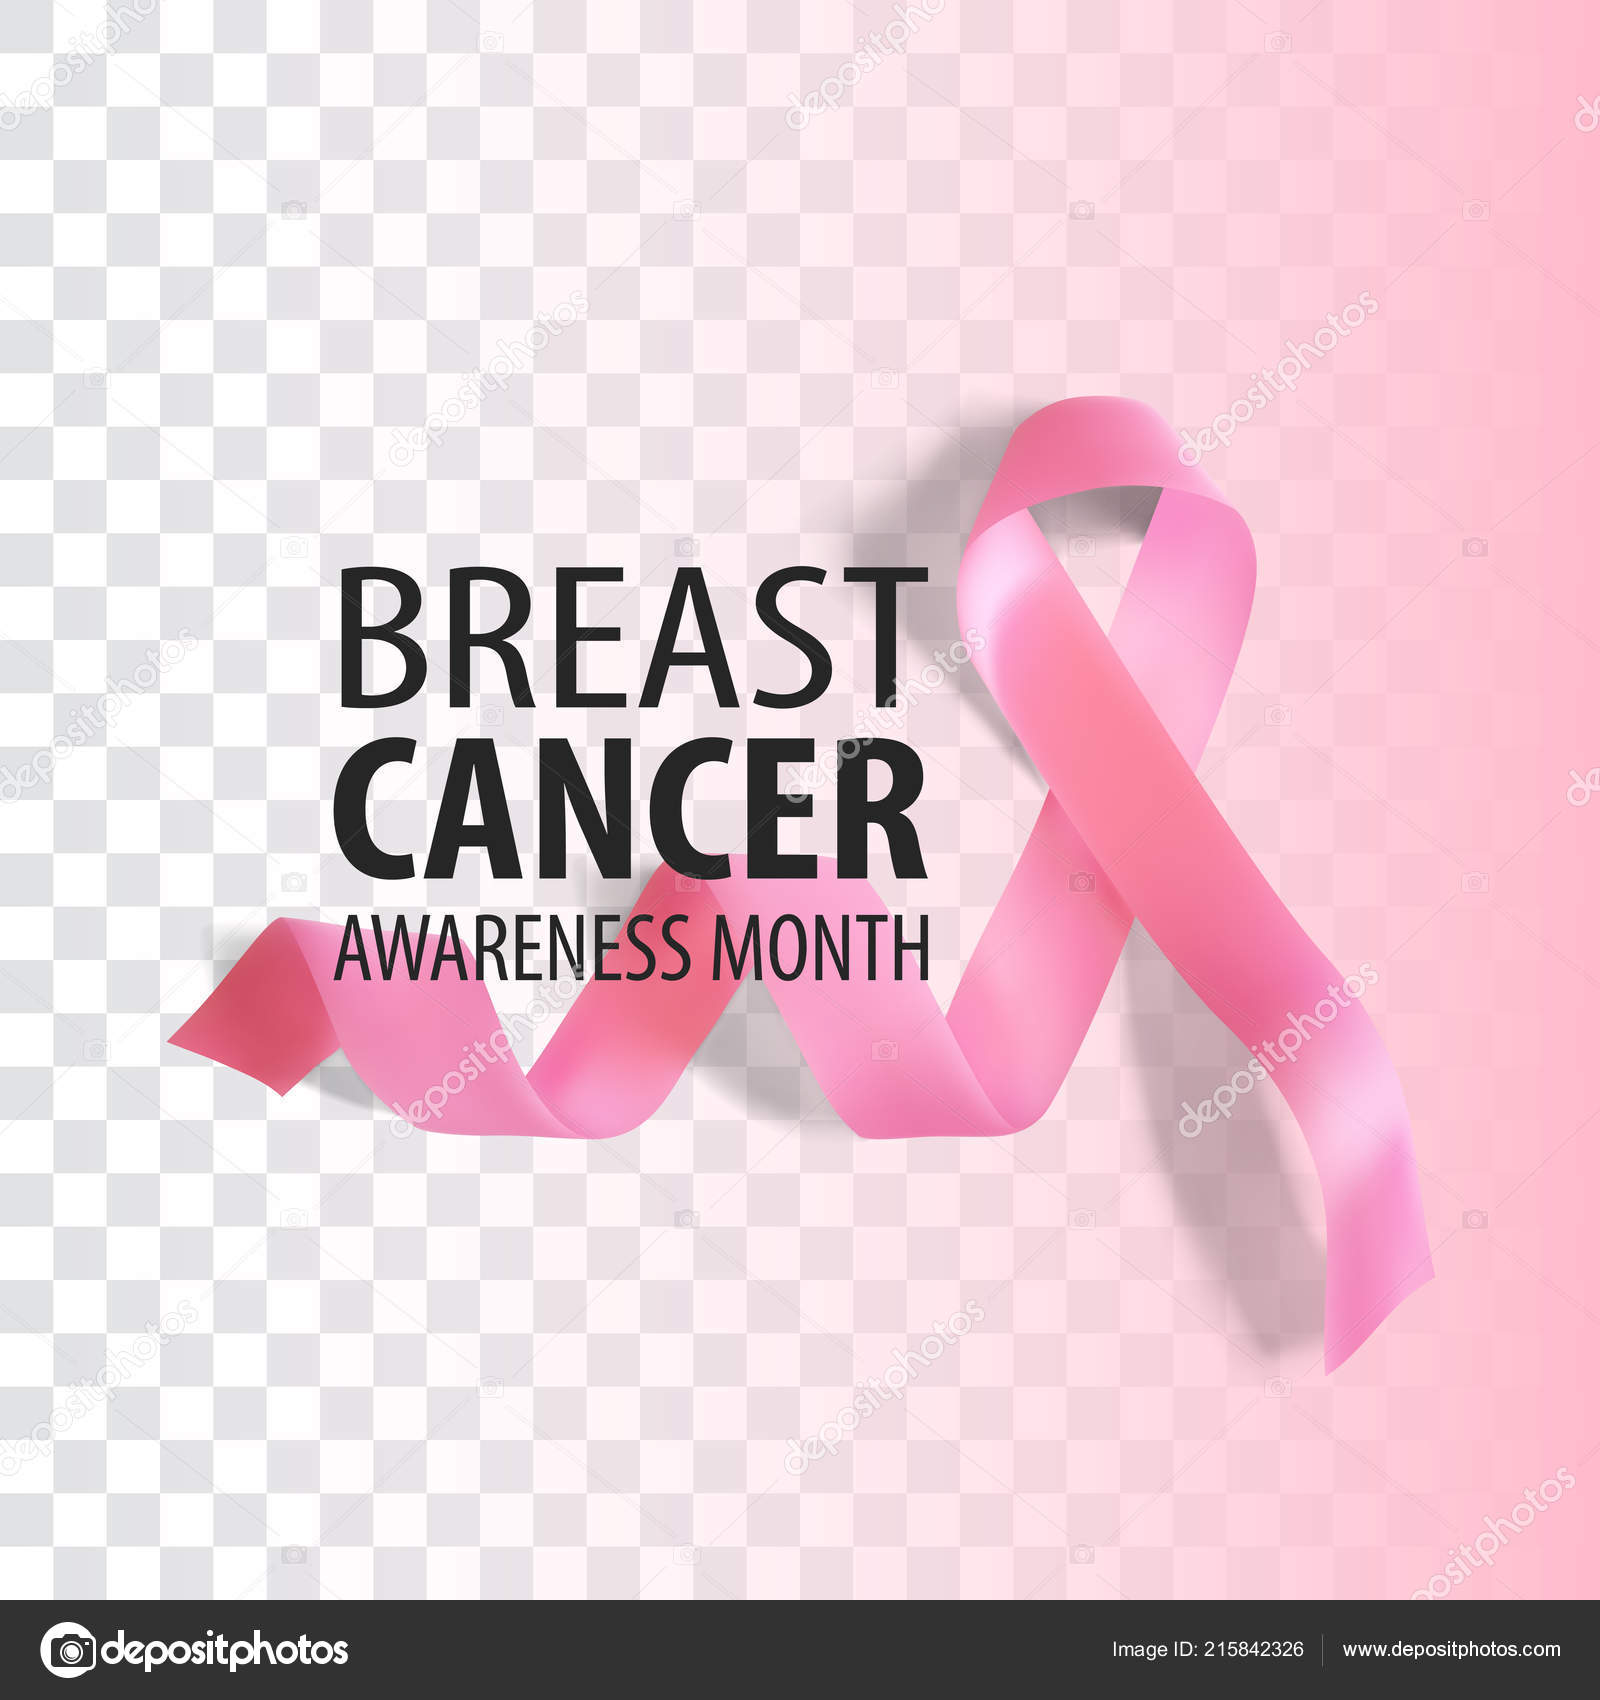 Realistic Pink Ribbon Breast Cancer Awareness Symbol On